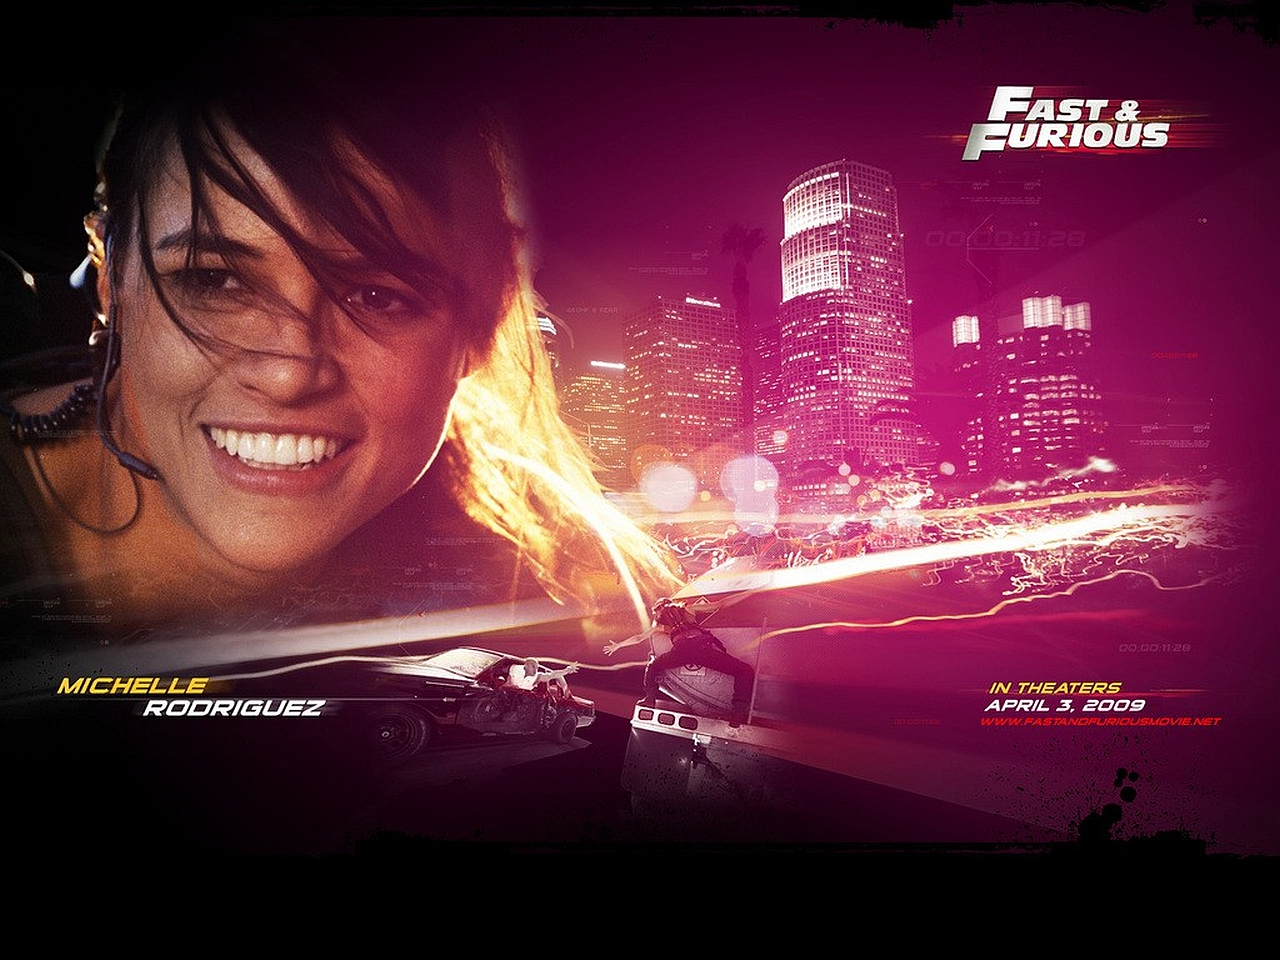 Wallpaper HD Michelle Rodrigues Fast And Furious 7